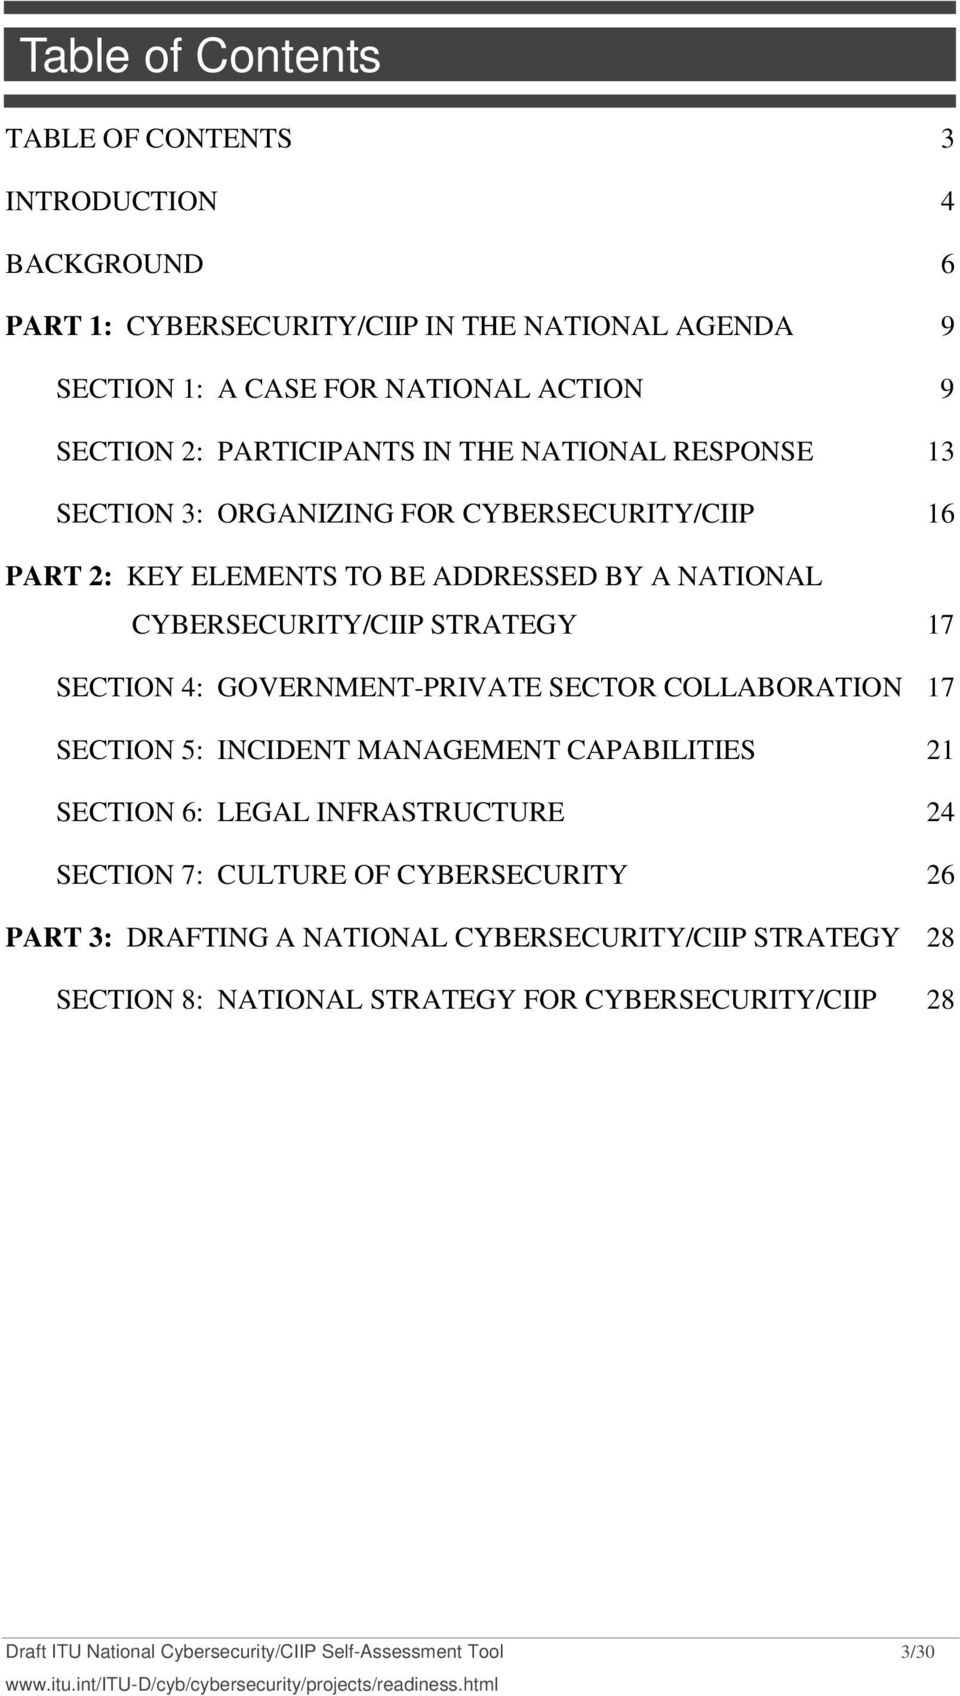 SECTION 4: GOVERNMENT-PRIVATE SECTOR COLLABORATION 17 SECTION 5: INCIDENT MANAGEMENT CAPABILITIES 21 SECTION 6: LEGAL INFRASTRUCTURE 24 SECTION 7: CULTURE OF CYBERSECURITY